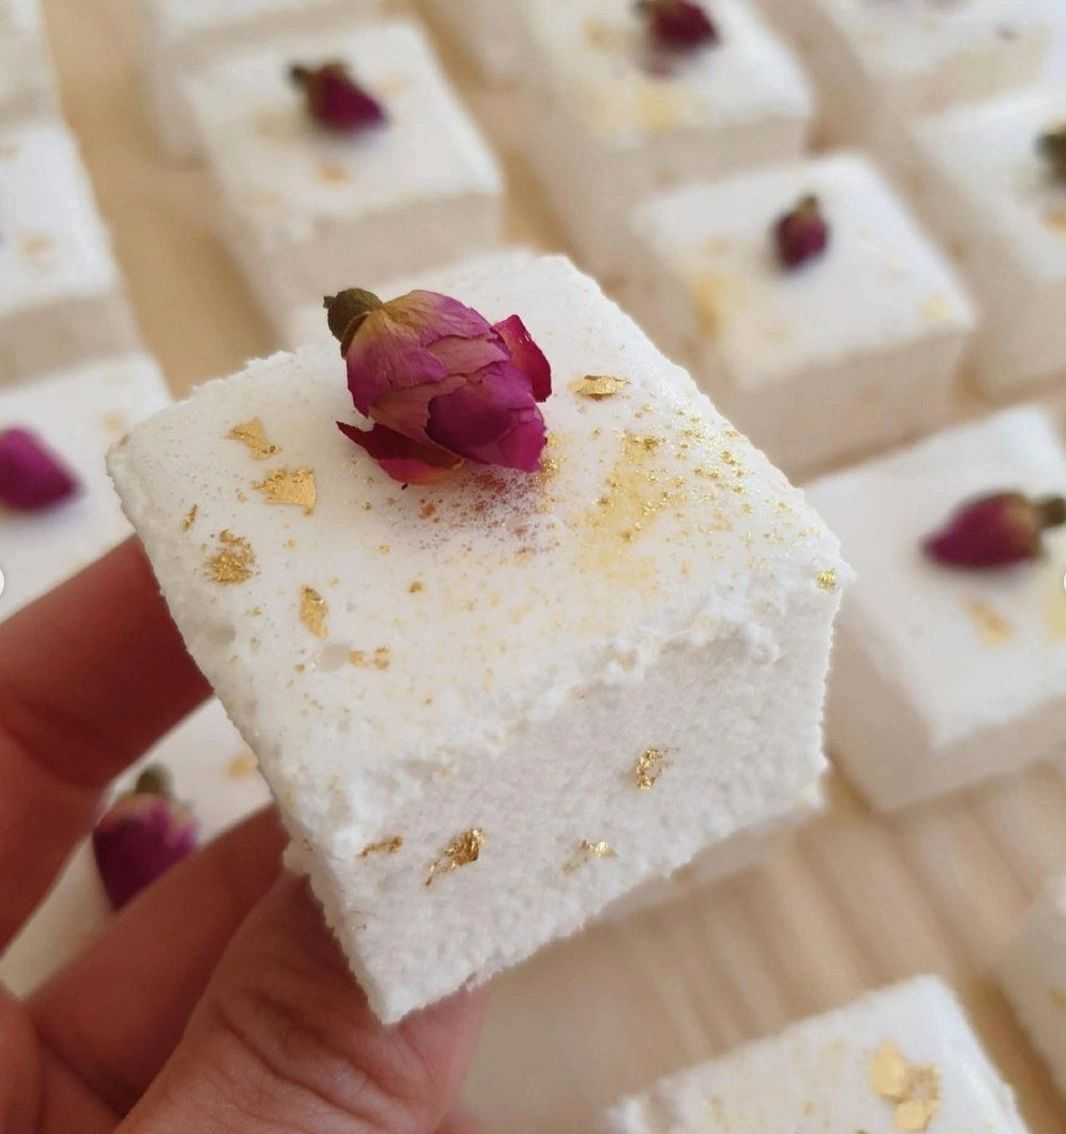 Goldie Lux Vanilla Bean Marshmallow Cube -These 'mallows are worth their weight in GOLD!✨  We adorned these understated beauties with gold foil and edible flowers 🌹So simple, yet so luxurious, the perfect Valentine's Day treat!